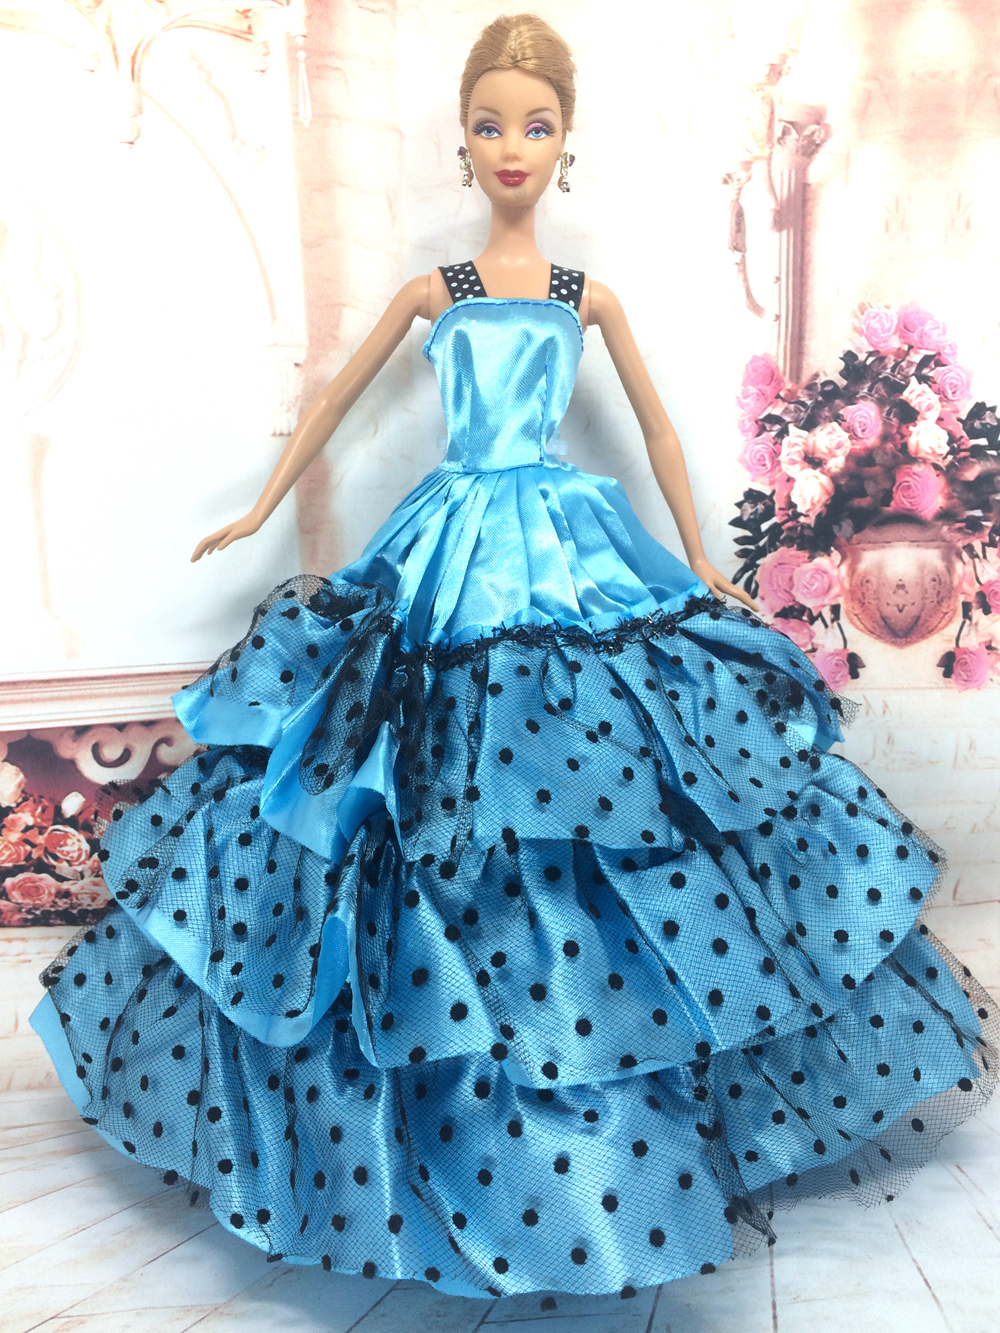 NK One Pcs Handmade Princess Marriage ceremony Costume Noble Occasion Robe For Barbie Doll Trend Design Outfit Greatest Present For Lady' Doll 054B